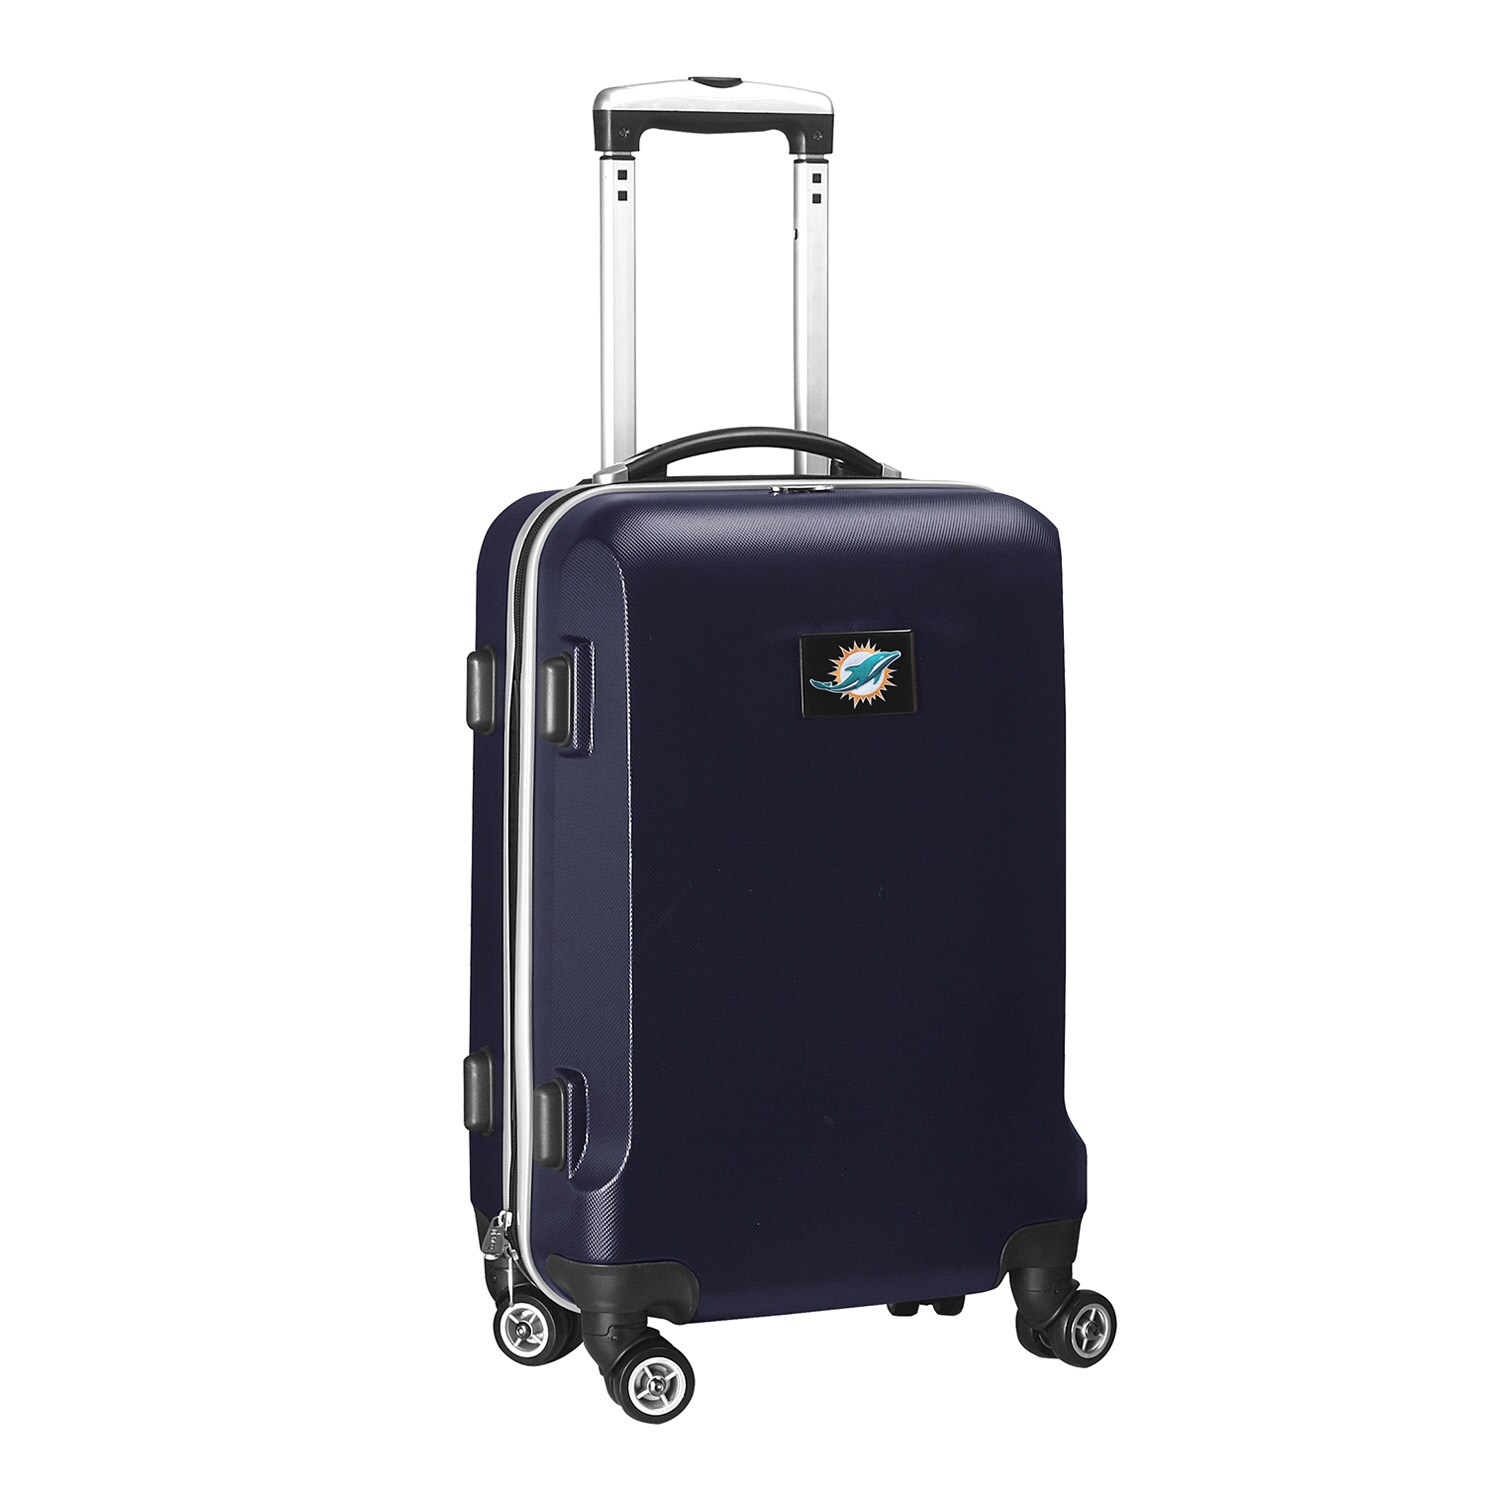 "Miami Dolphins 20"" 8-Wheel Hardcase Spinner Carry-On - Navy"